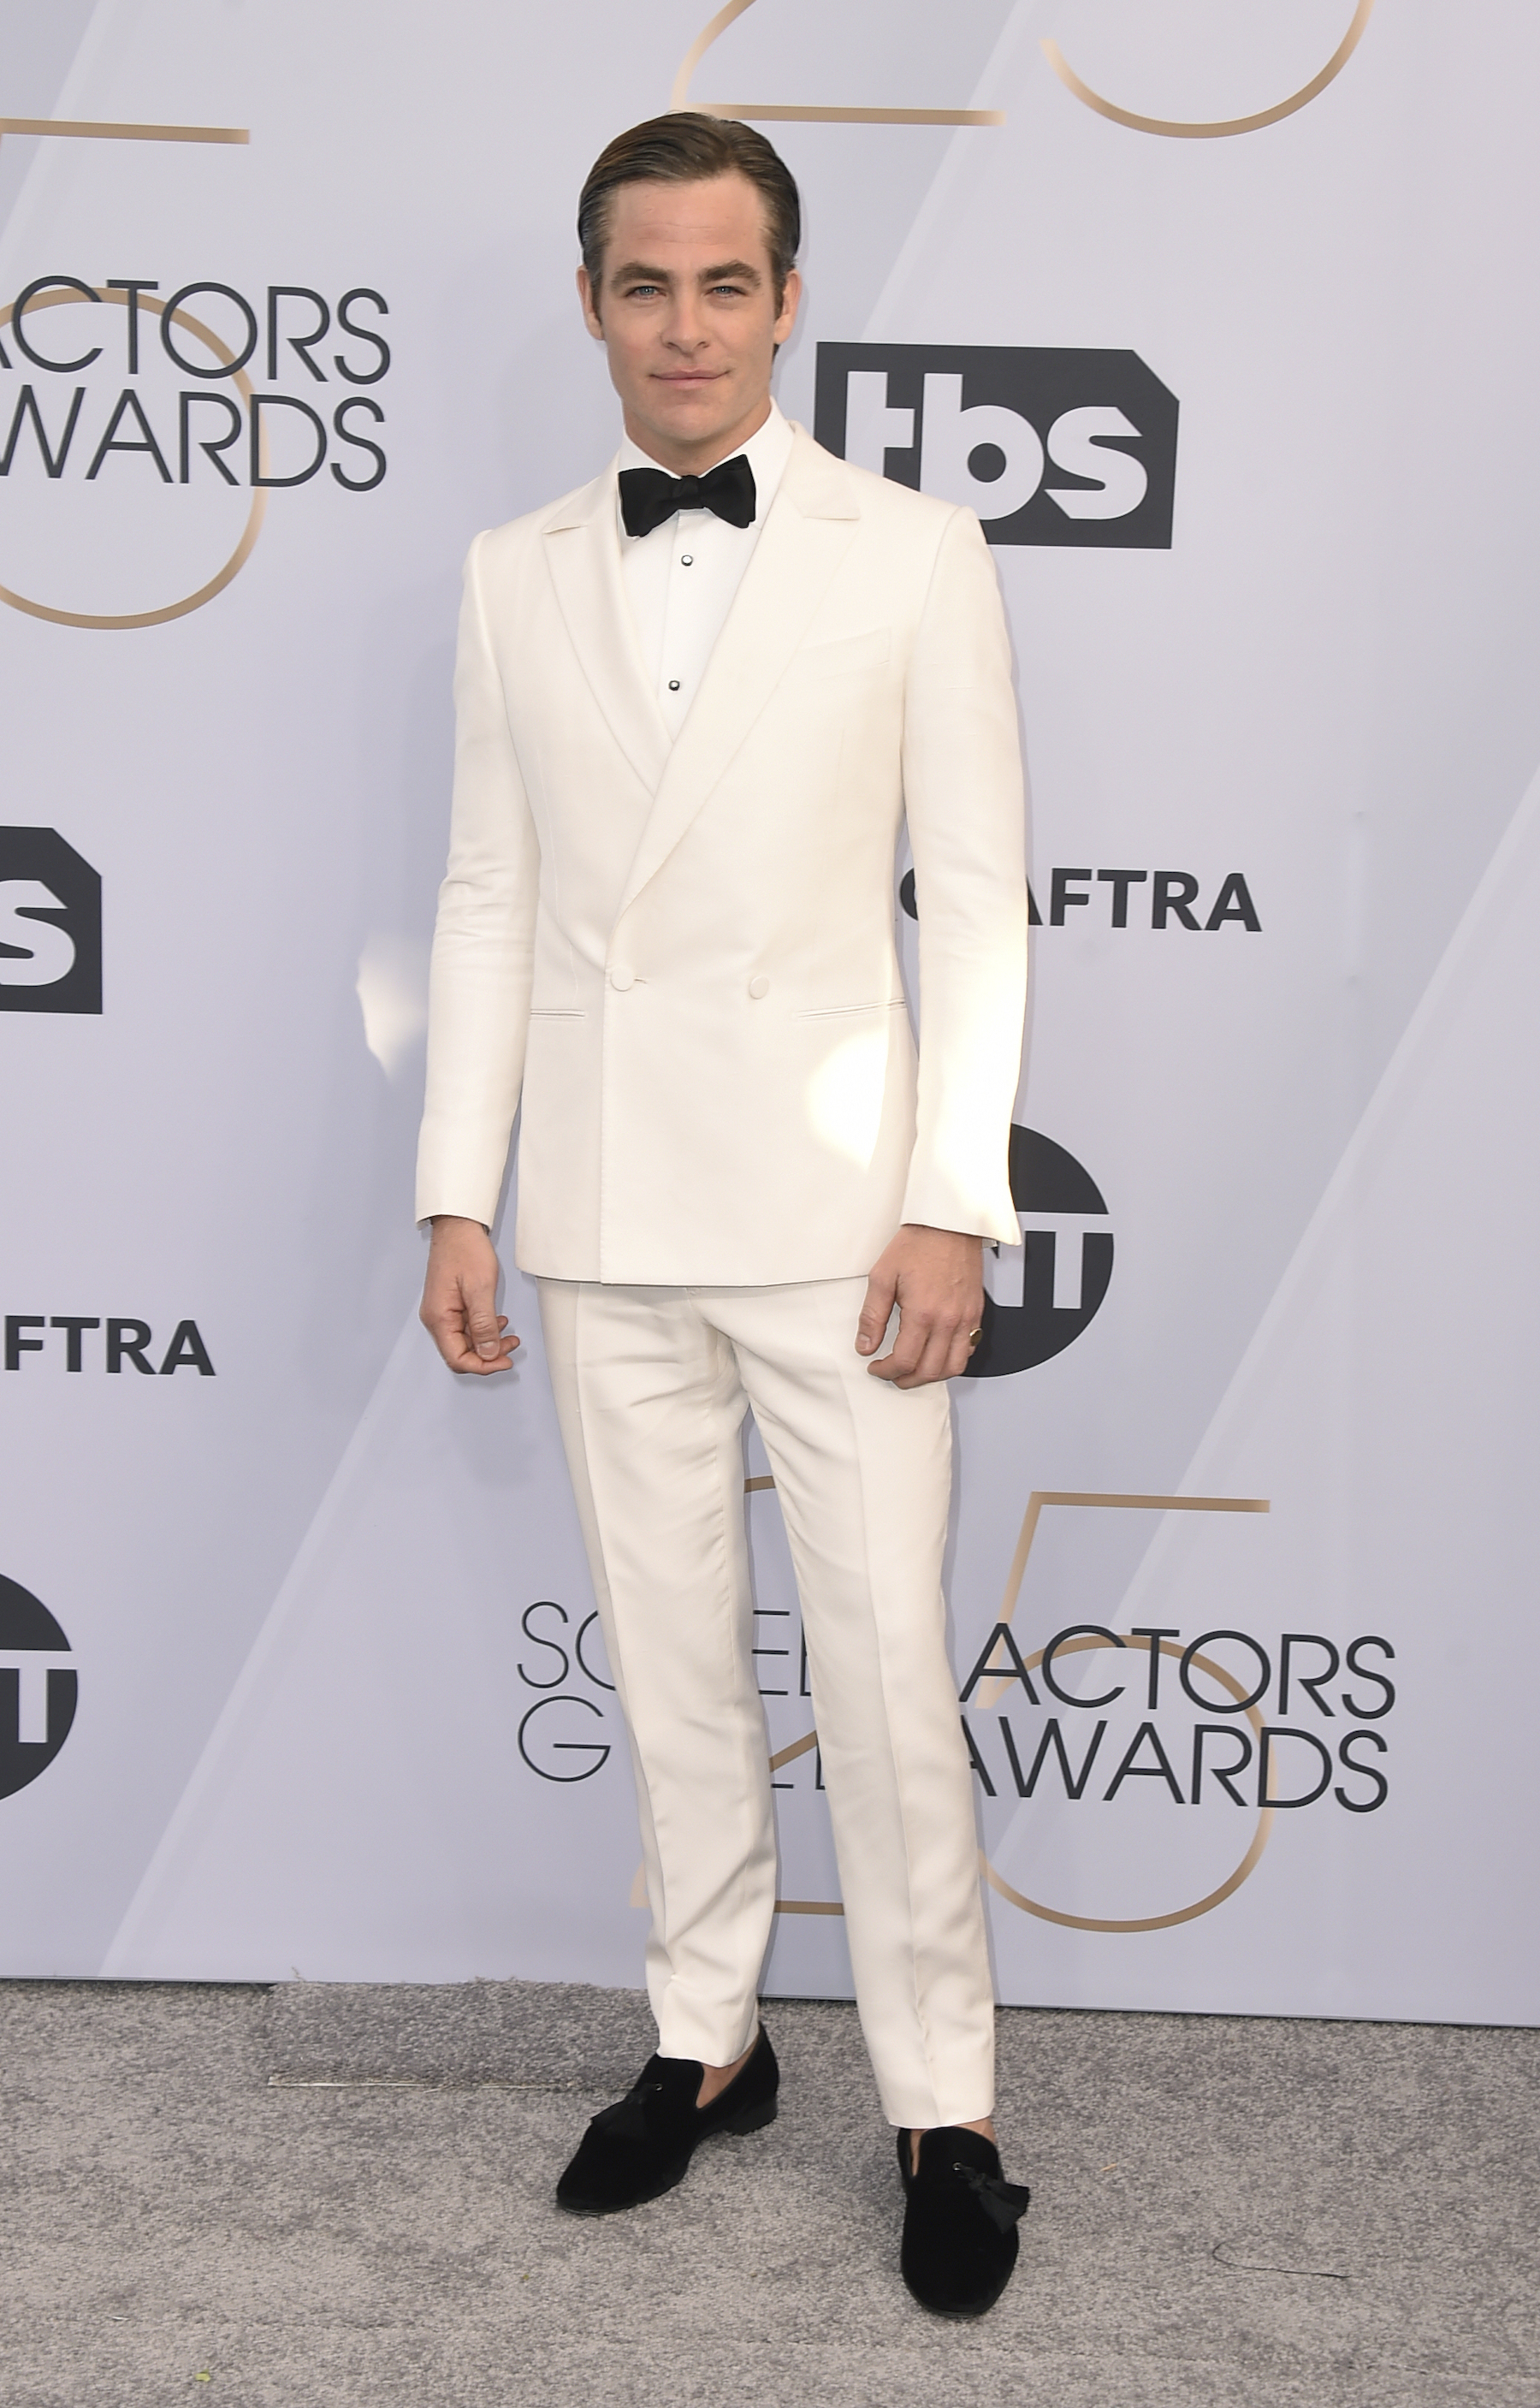 <div class='meta'><div class='origin-logo' data-origin='AP'></div><span class='caption-text' data-credit='Jordan Strauss/Invision/AP'>Chris Pine arrives at the 25th annual Screen Actors Guild Awards at the Shrine Auditorium & Expo Hall on Sunday, Jan. 27, 2019, in Los Angeles.</span></div>